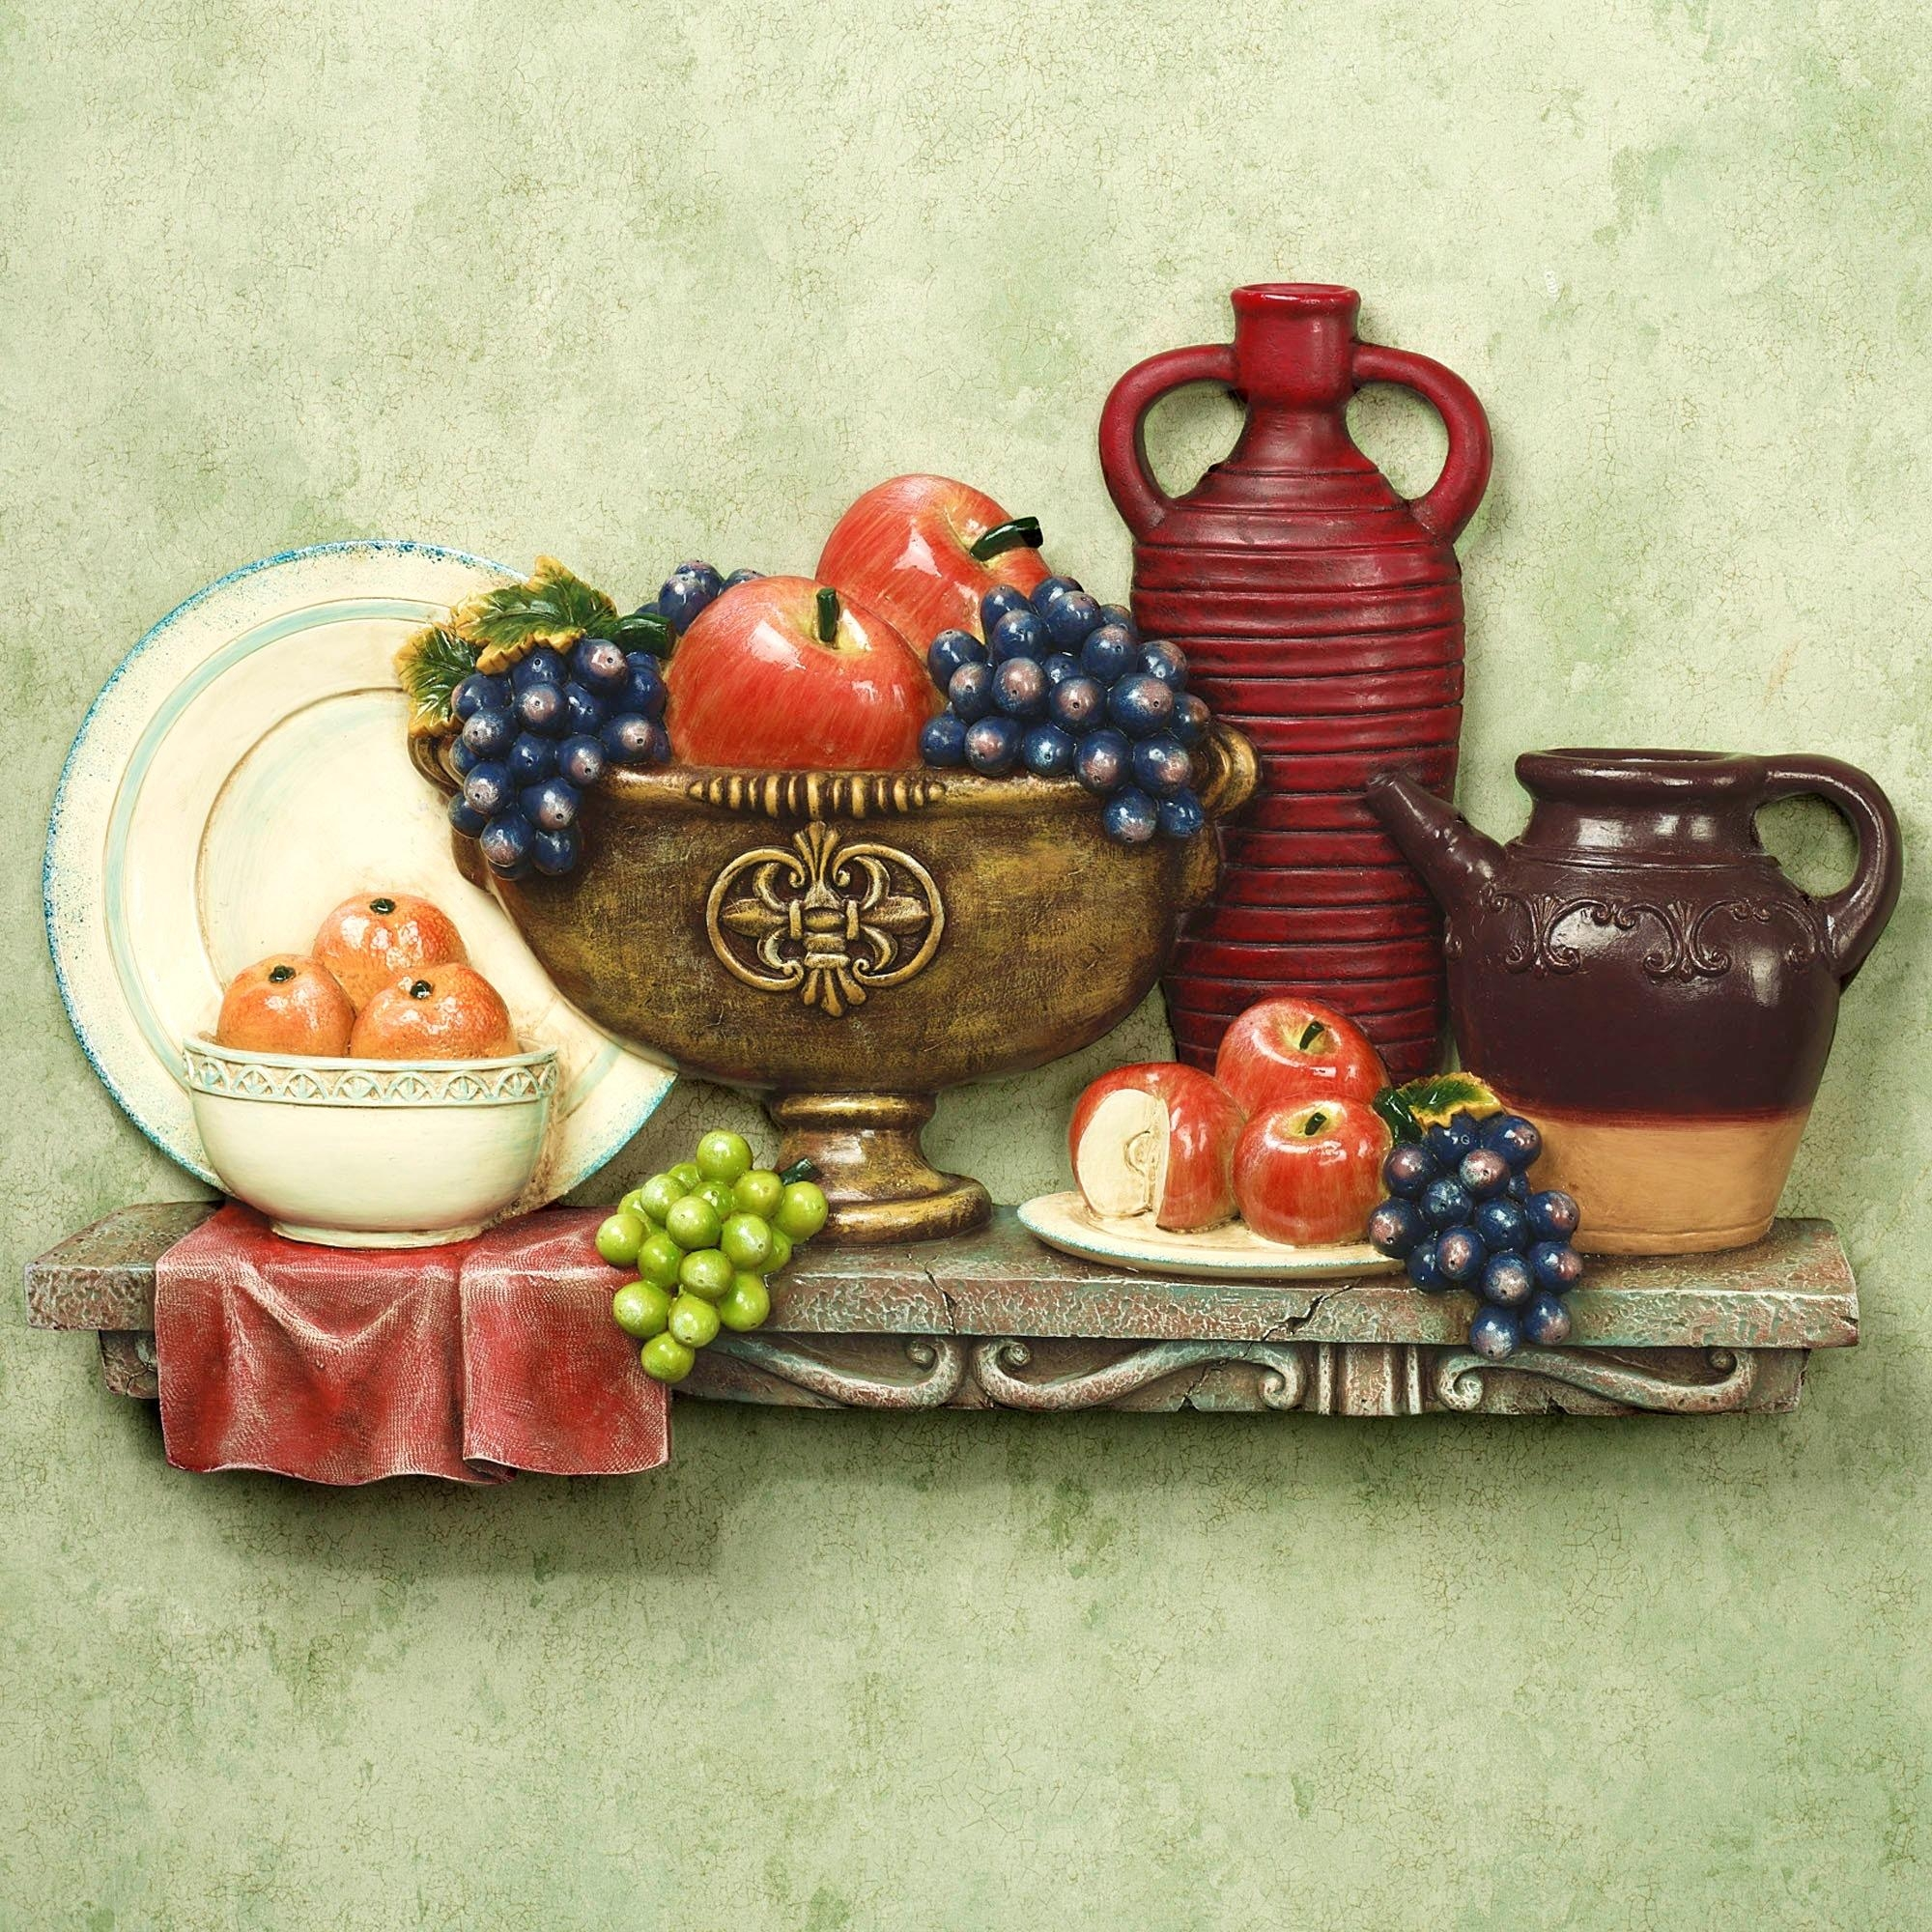 Furniture : Heavenly Kitchen And Spice Textual Art Plaque Italian Throughout Old Italian Wall Art (Image 2 of 20)